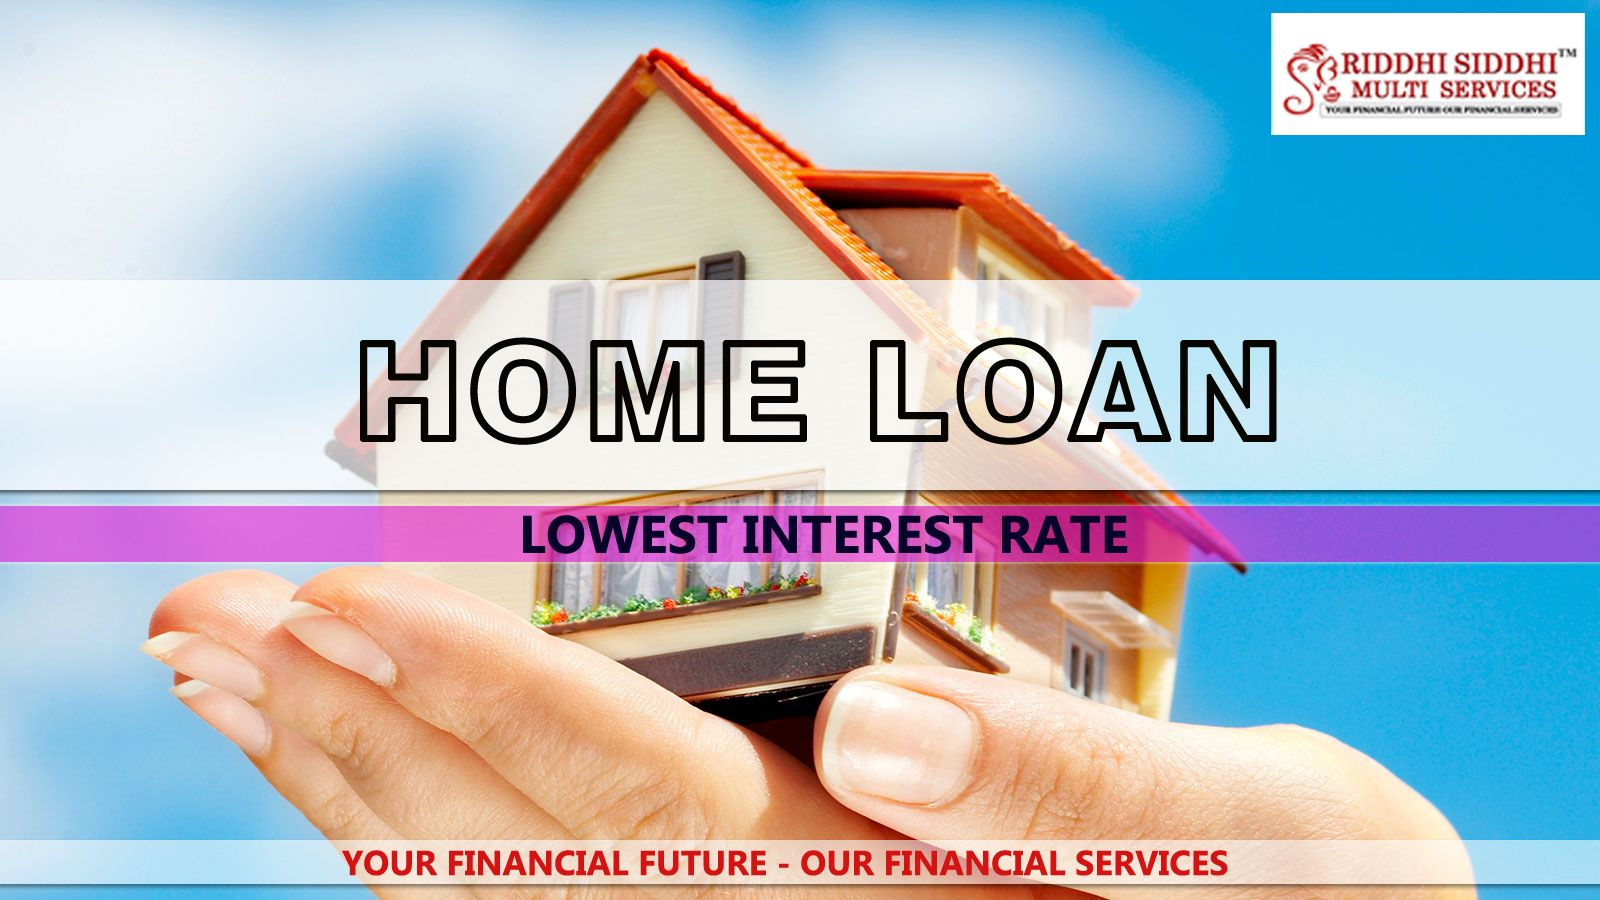 Best Home Loans With Attractive Interest Rates In India From